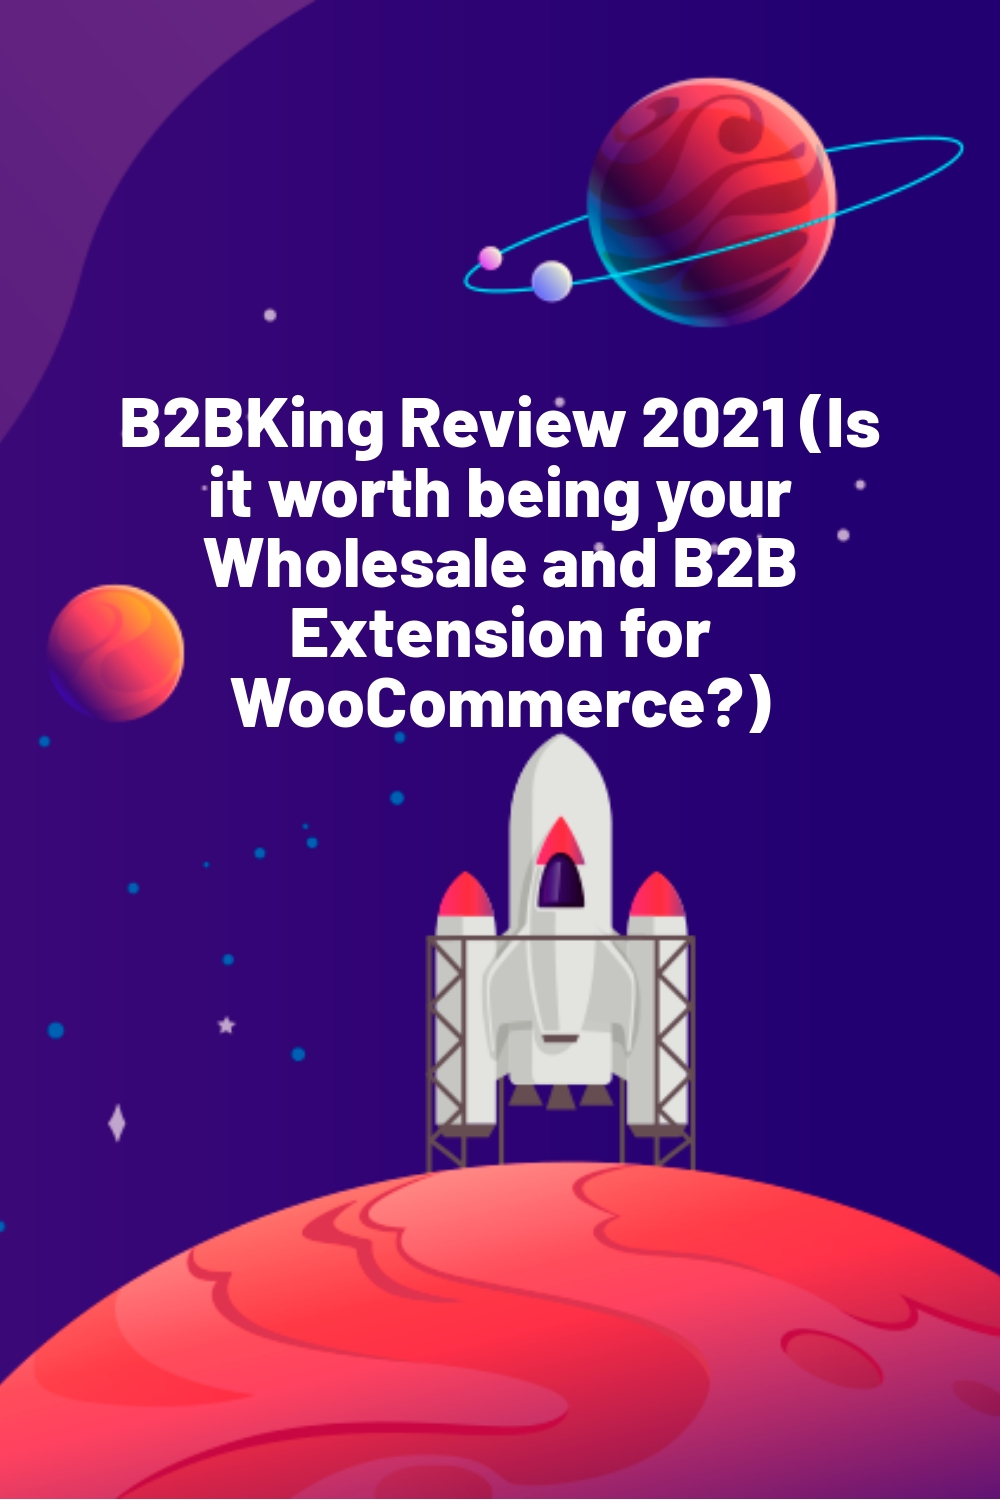 B2BKing Review 2021 (Is it worth being your Wholesale and B2B Extension for WooCommerce?)